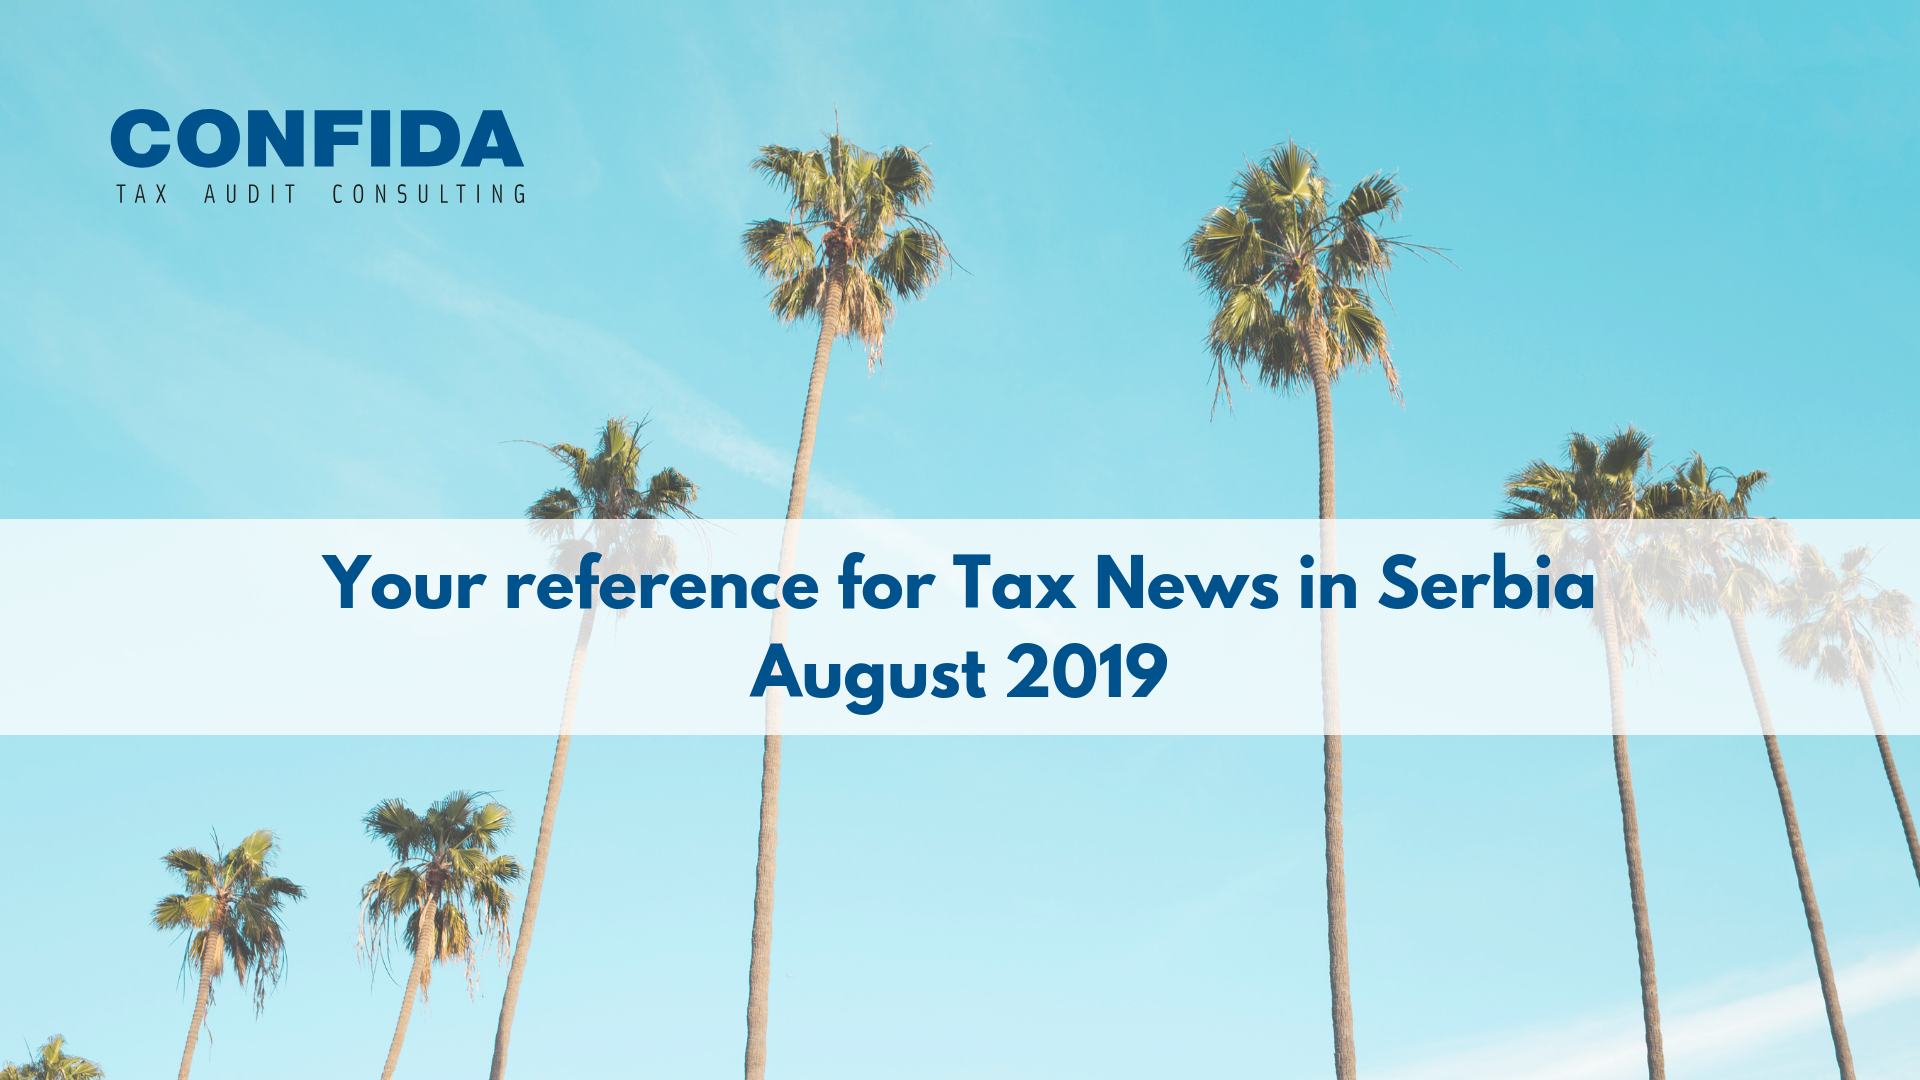 August 2019: Your reference for Tax News in Serbia